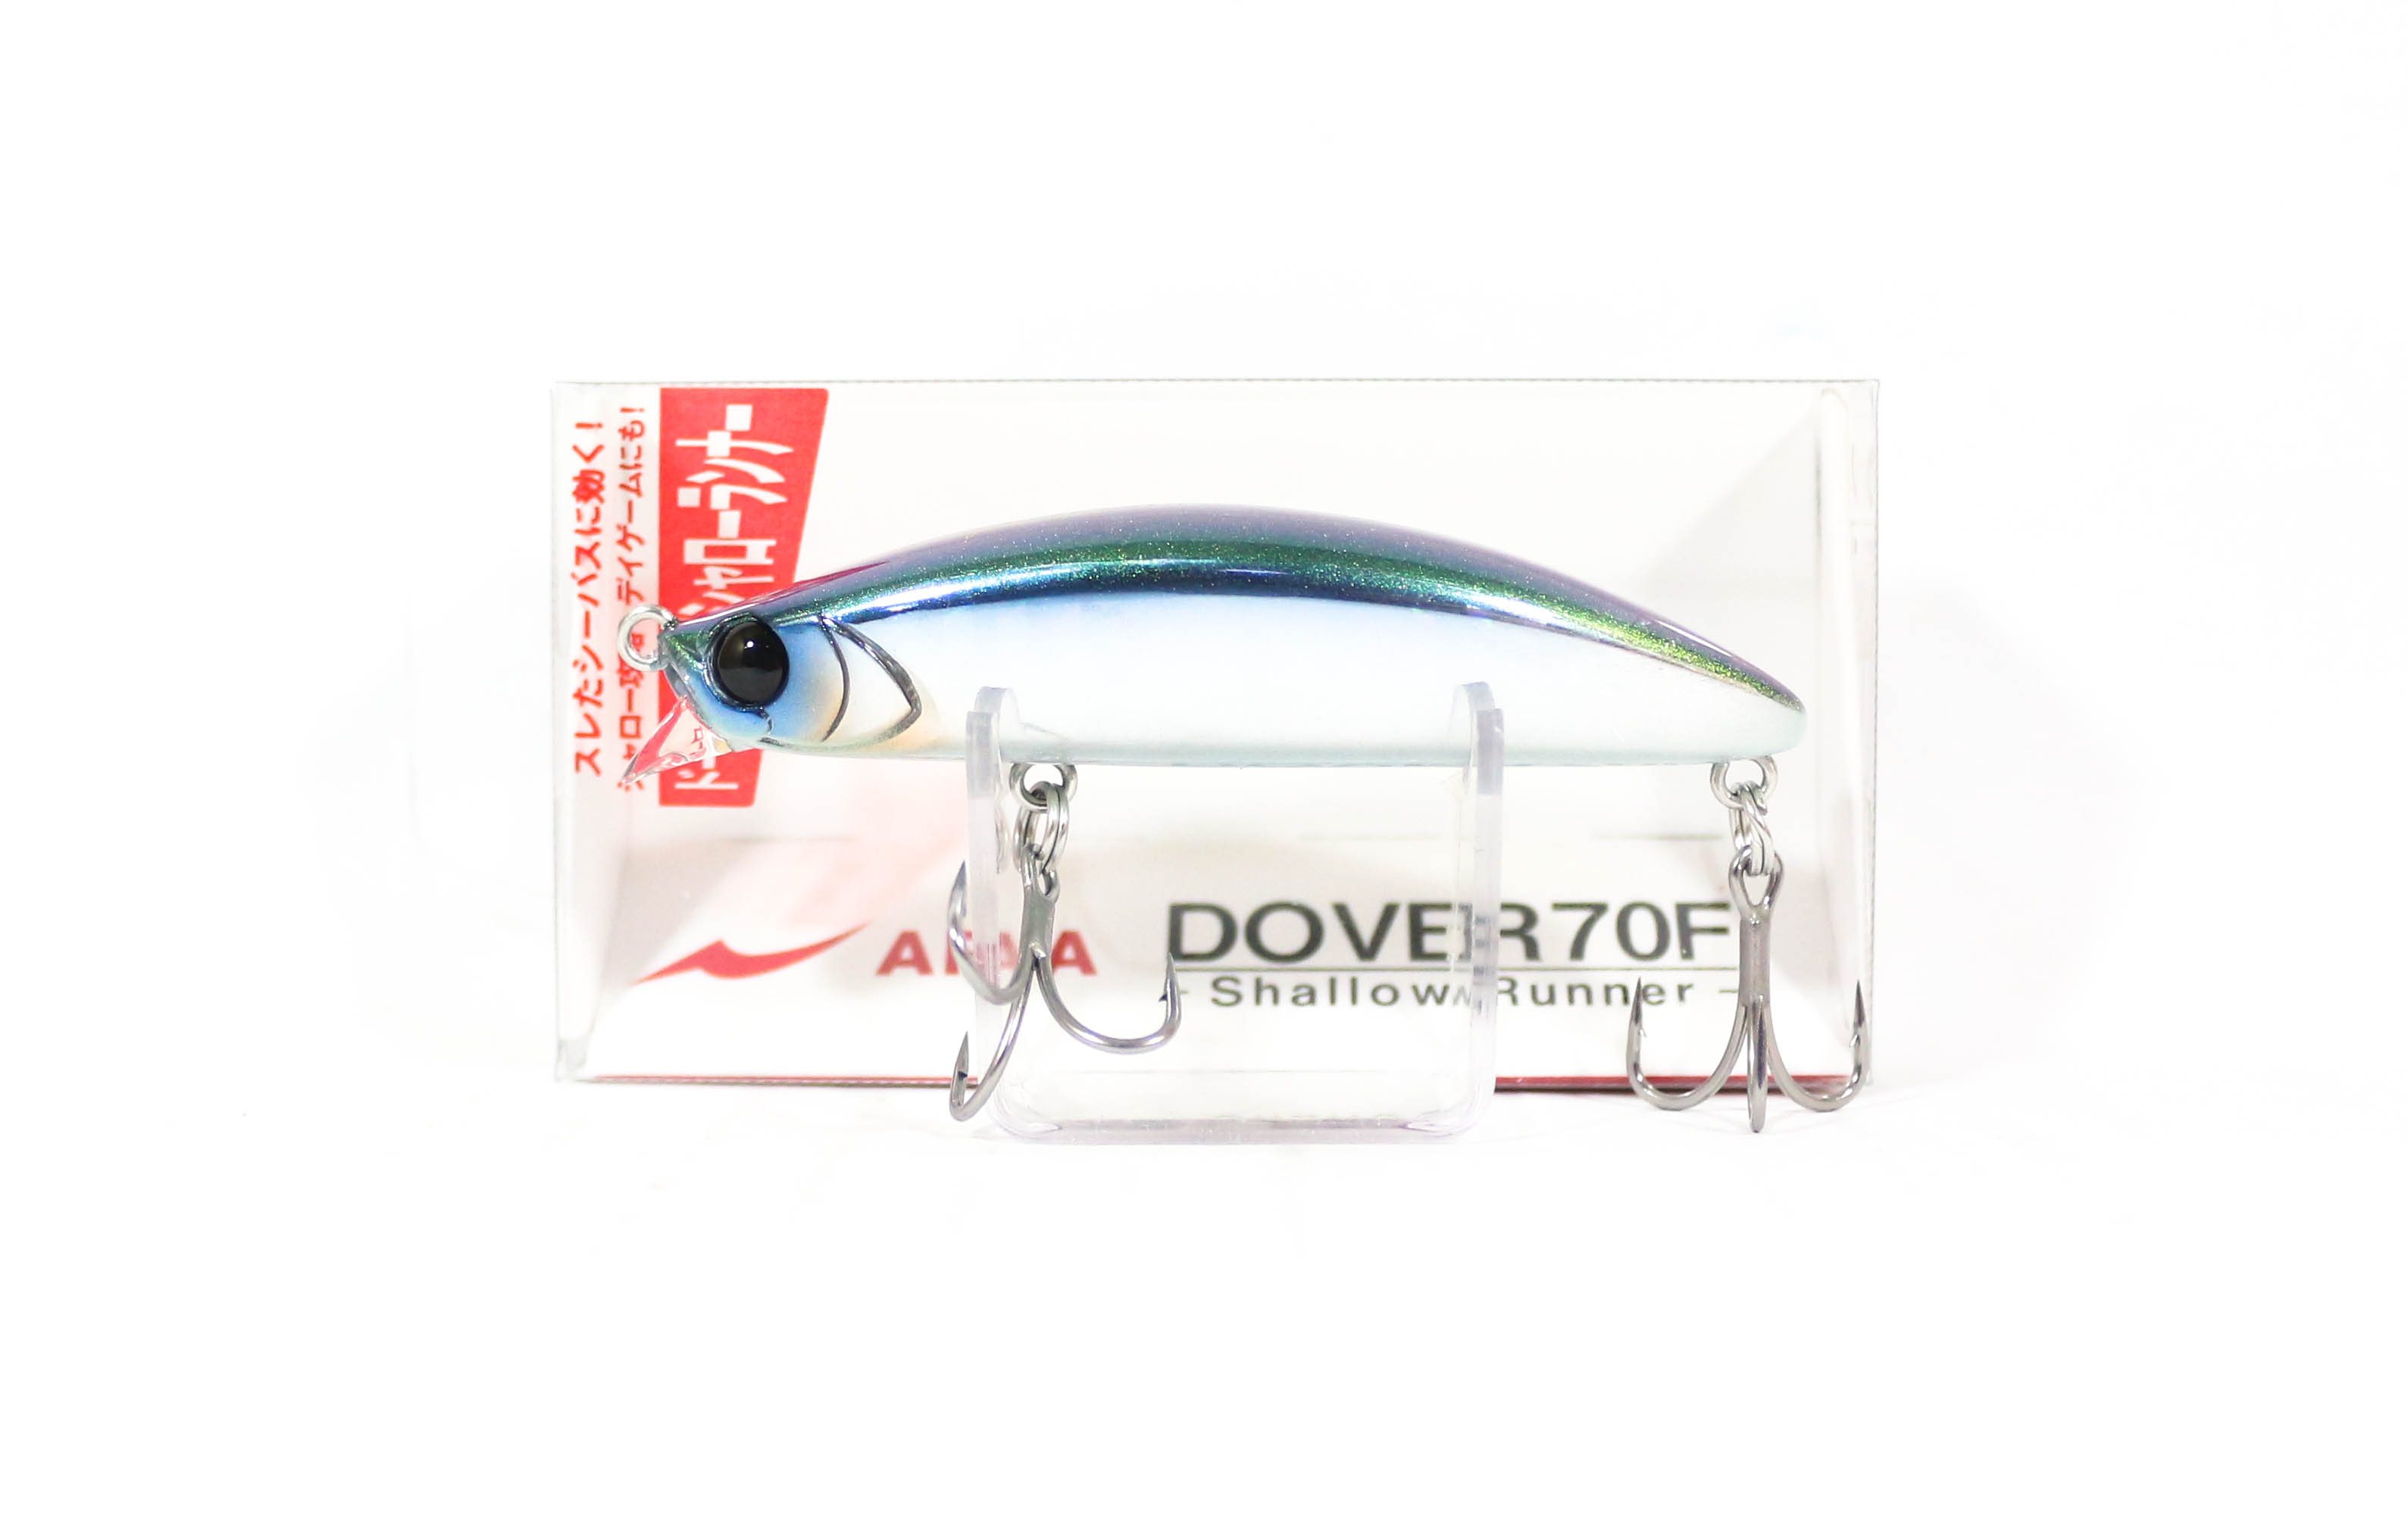 Apia Dover 70 F Floating Lure 06 (8641)